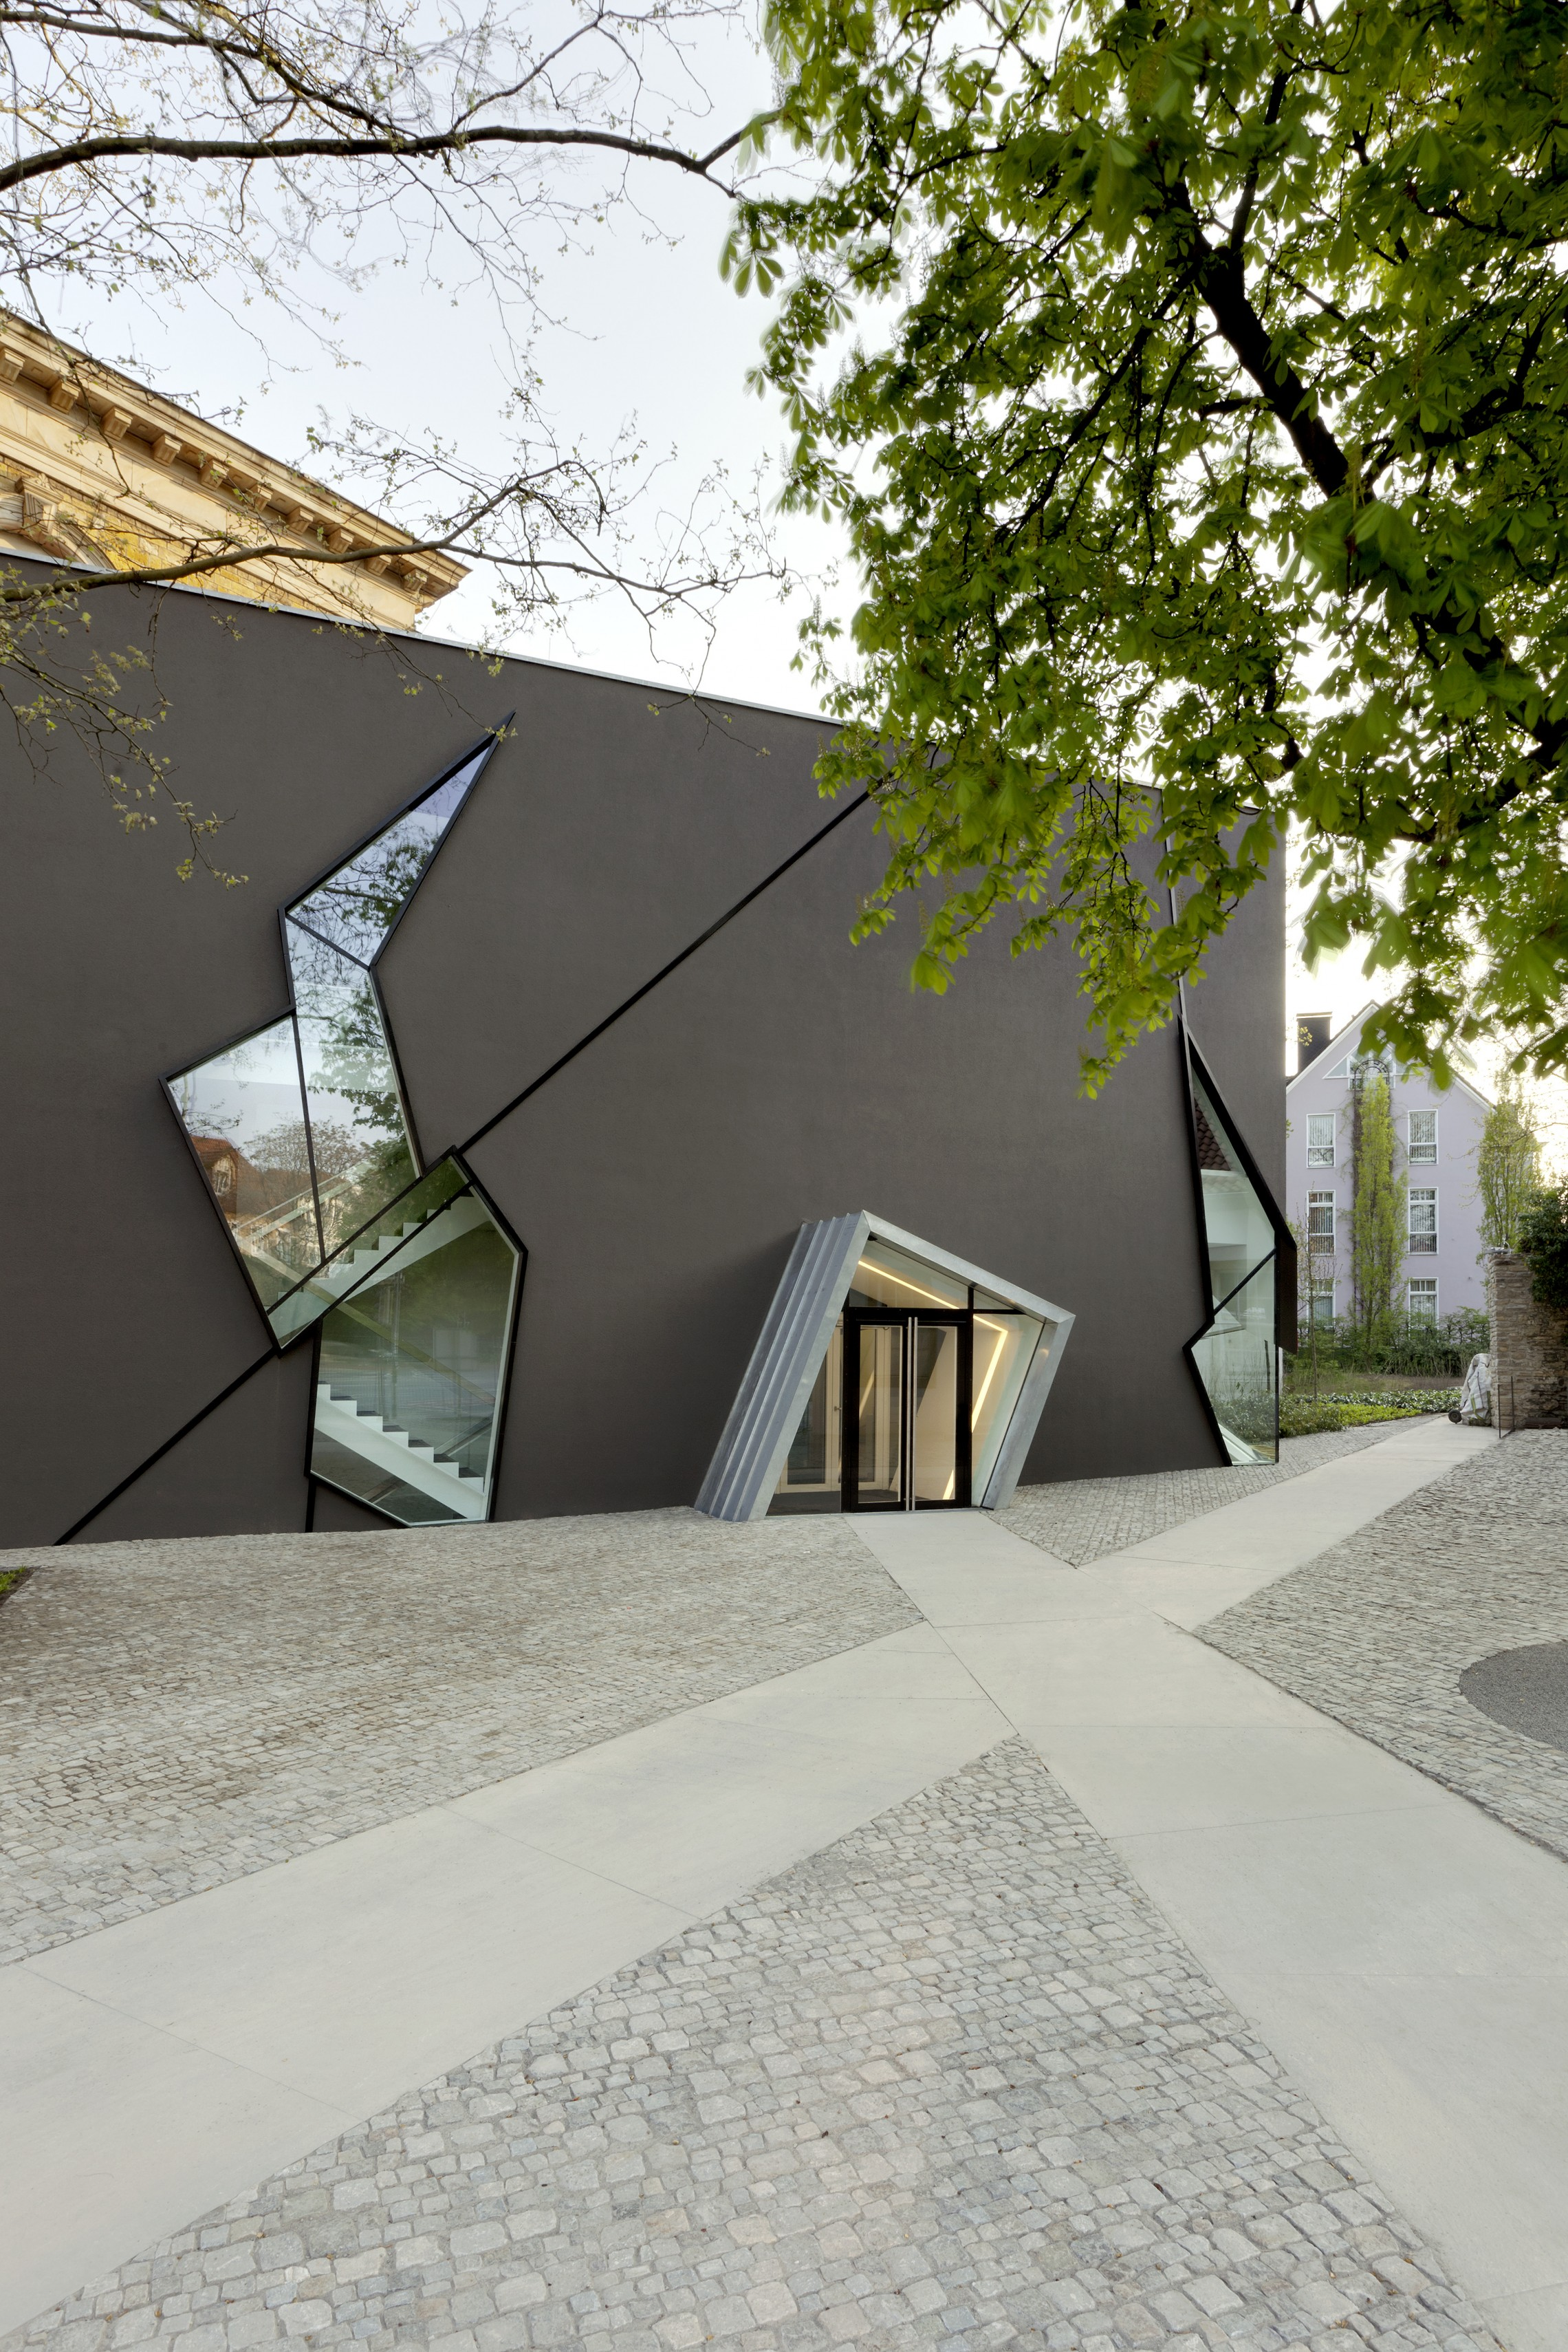 Extension to the Felix Nussbaum Haus  Libeskind